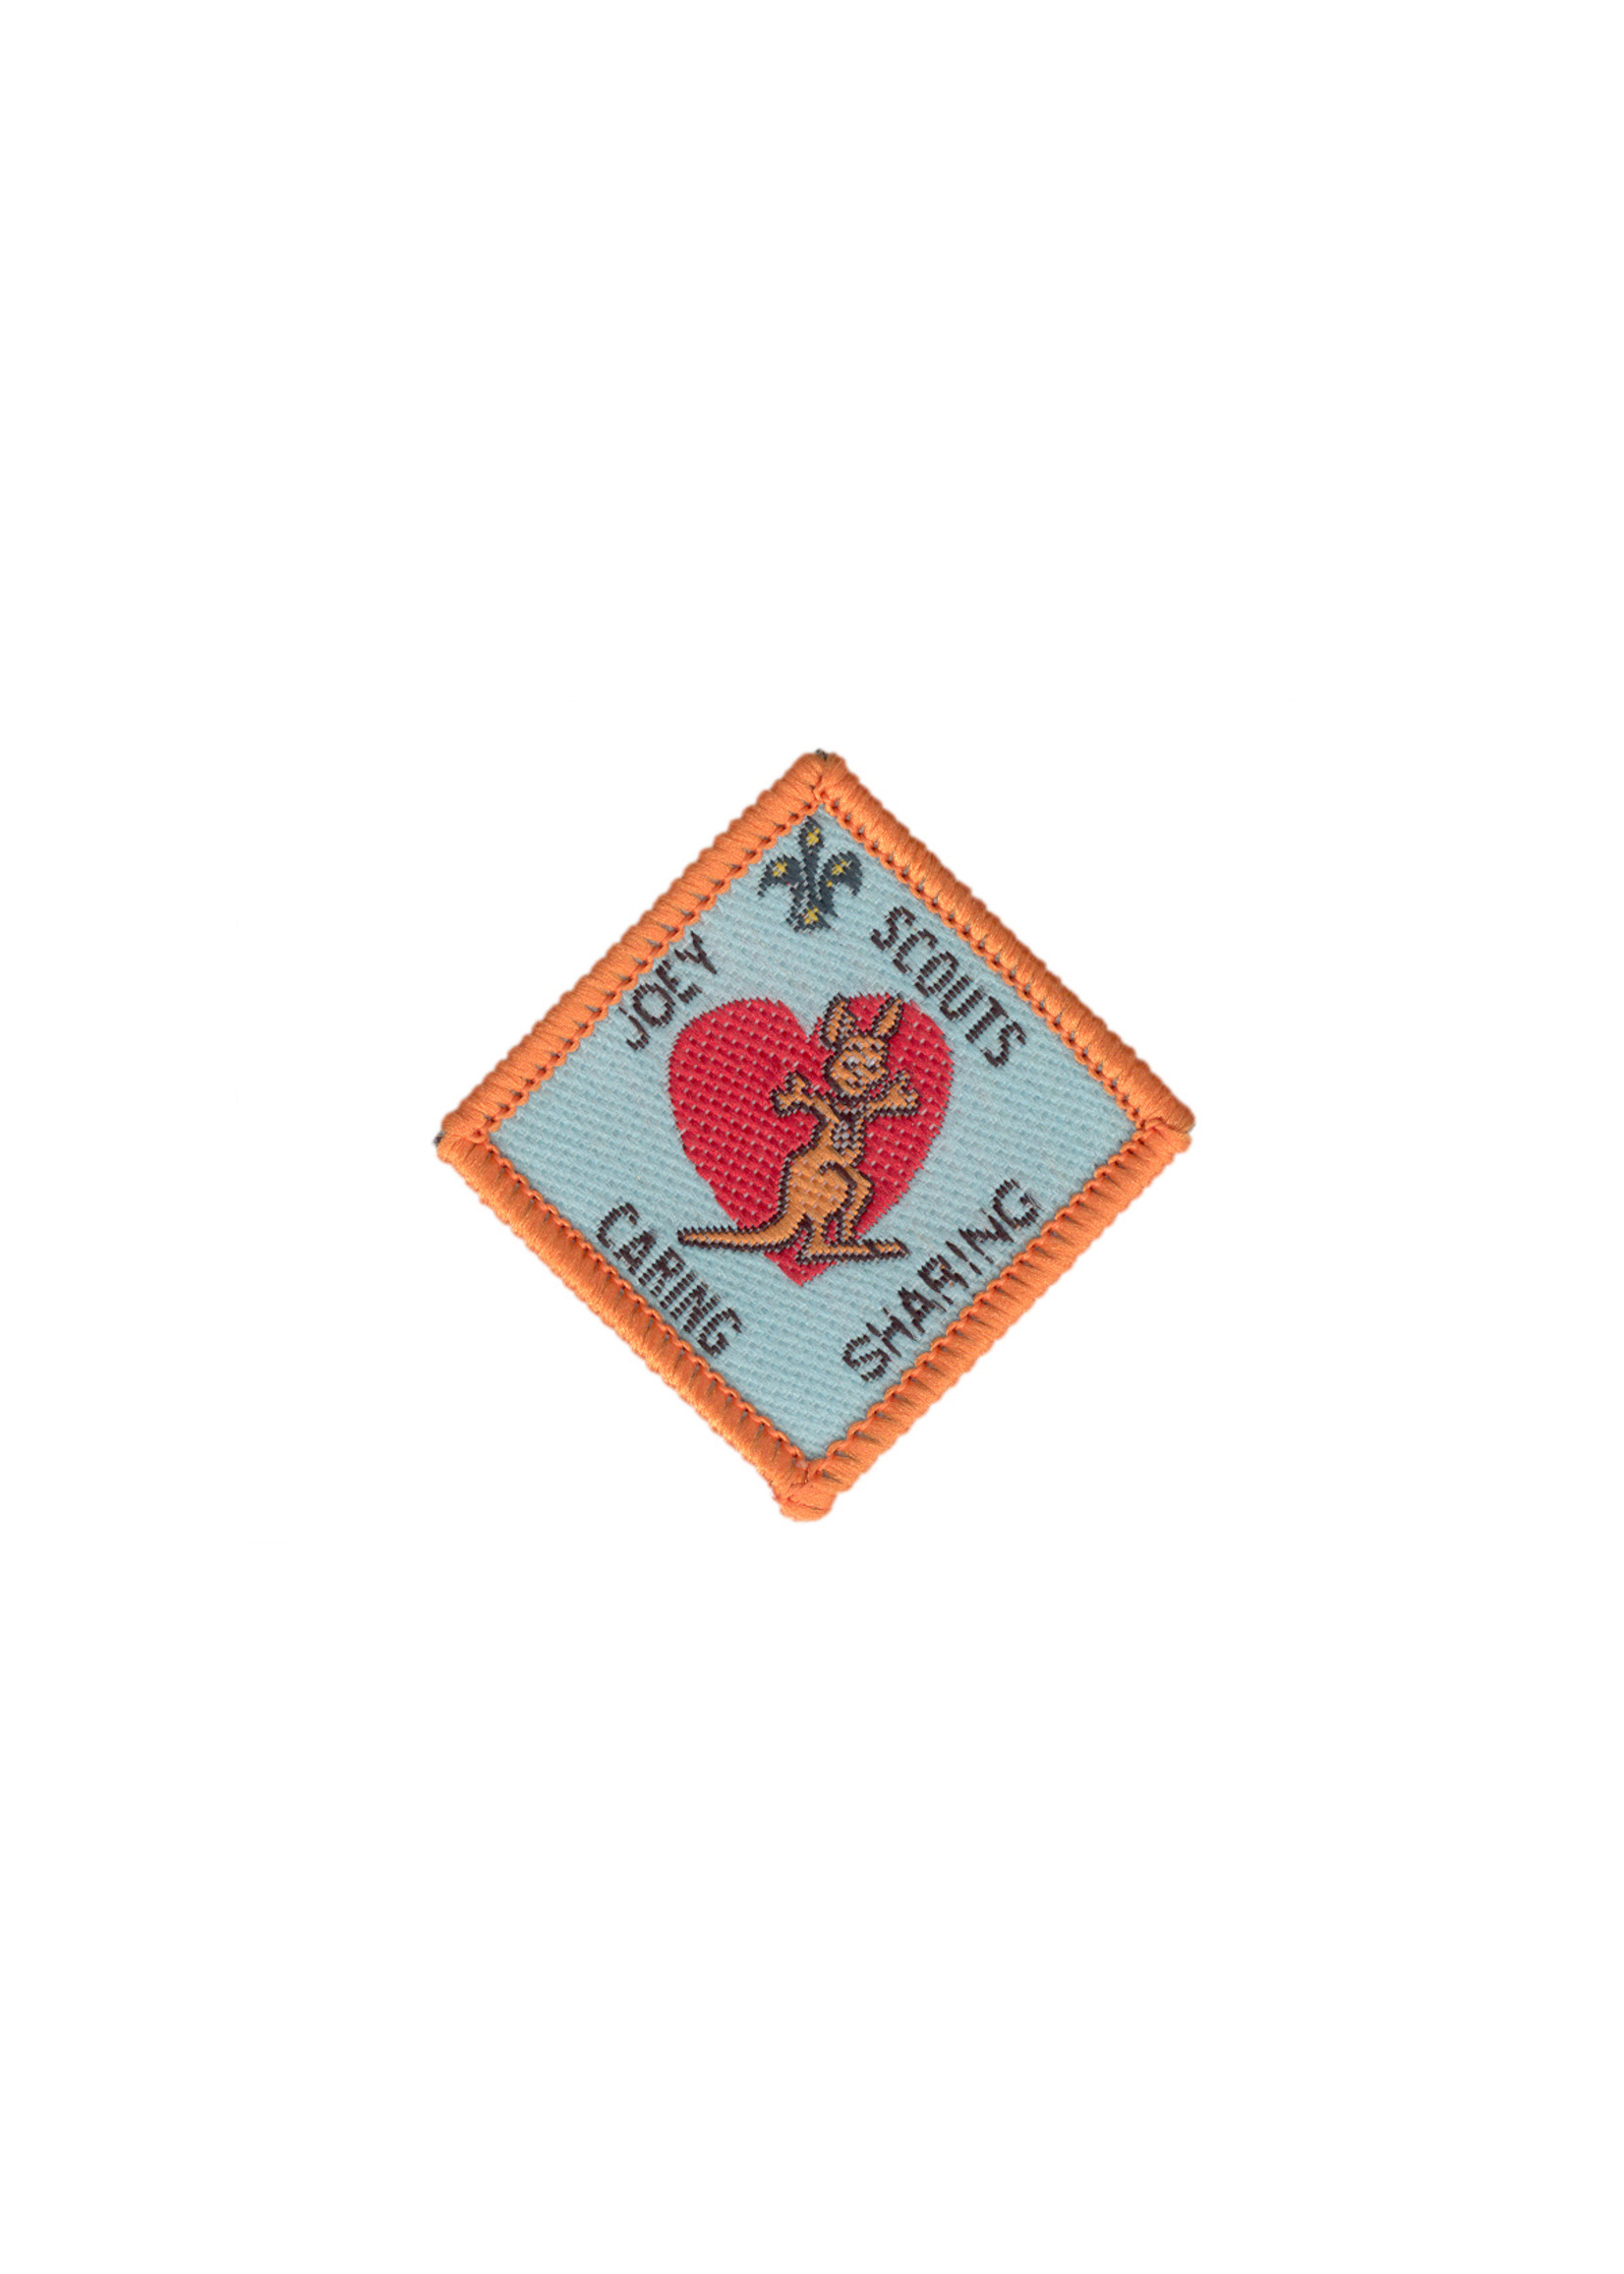 Joey Scouts - Caring Sharing Badge